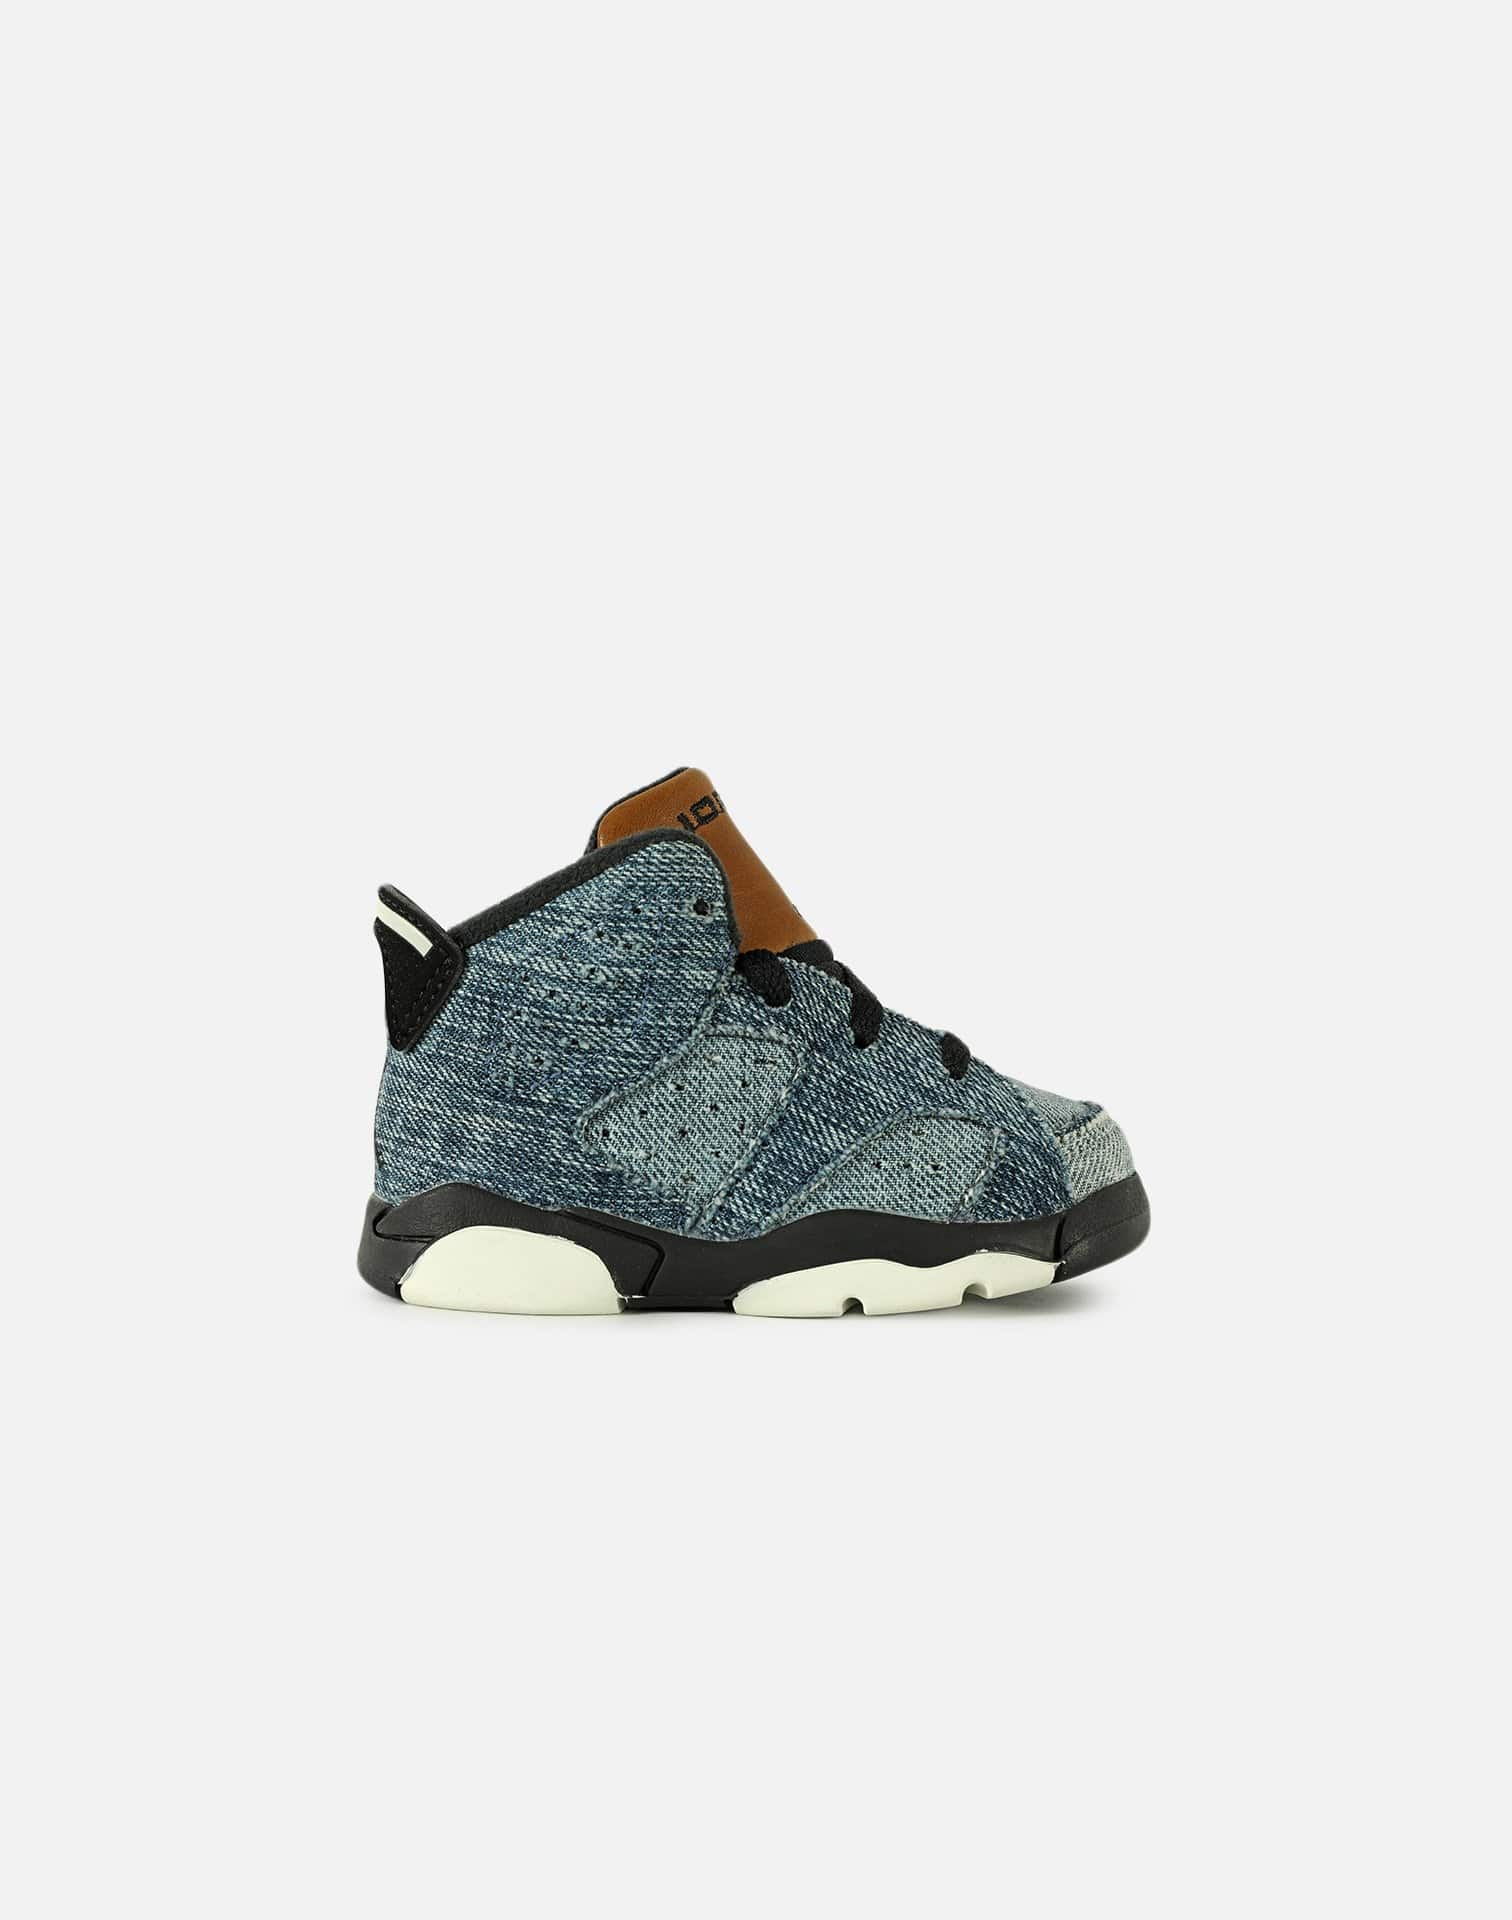 Jordan AIR JORDAN RETRO 6 DENIM 'INFANT'